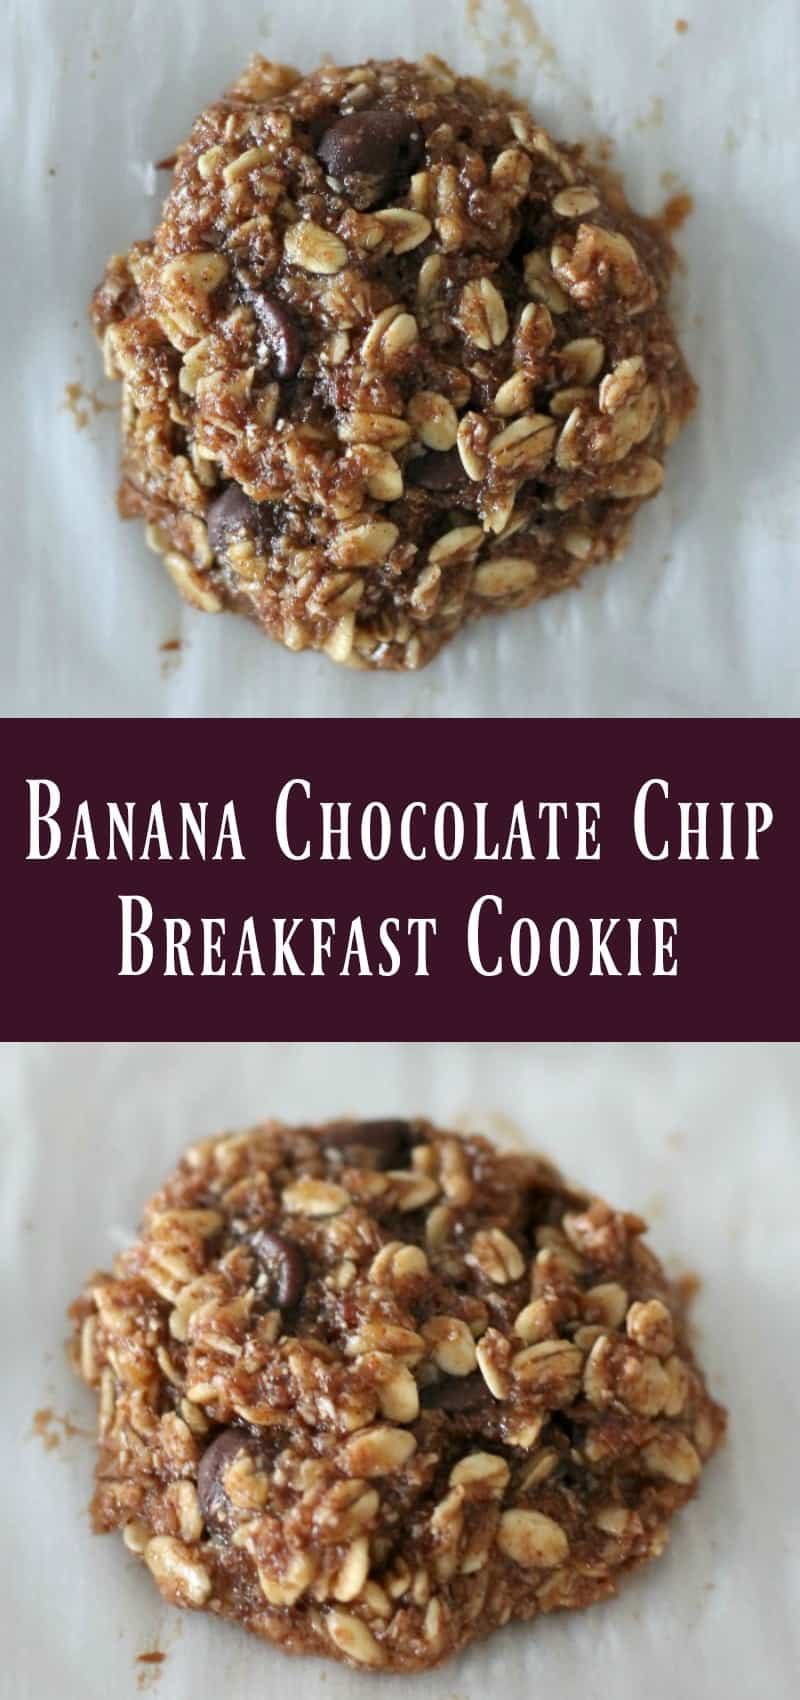 Banana Chocolate Chip Breakfast Cookie Recipe